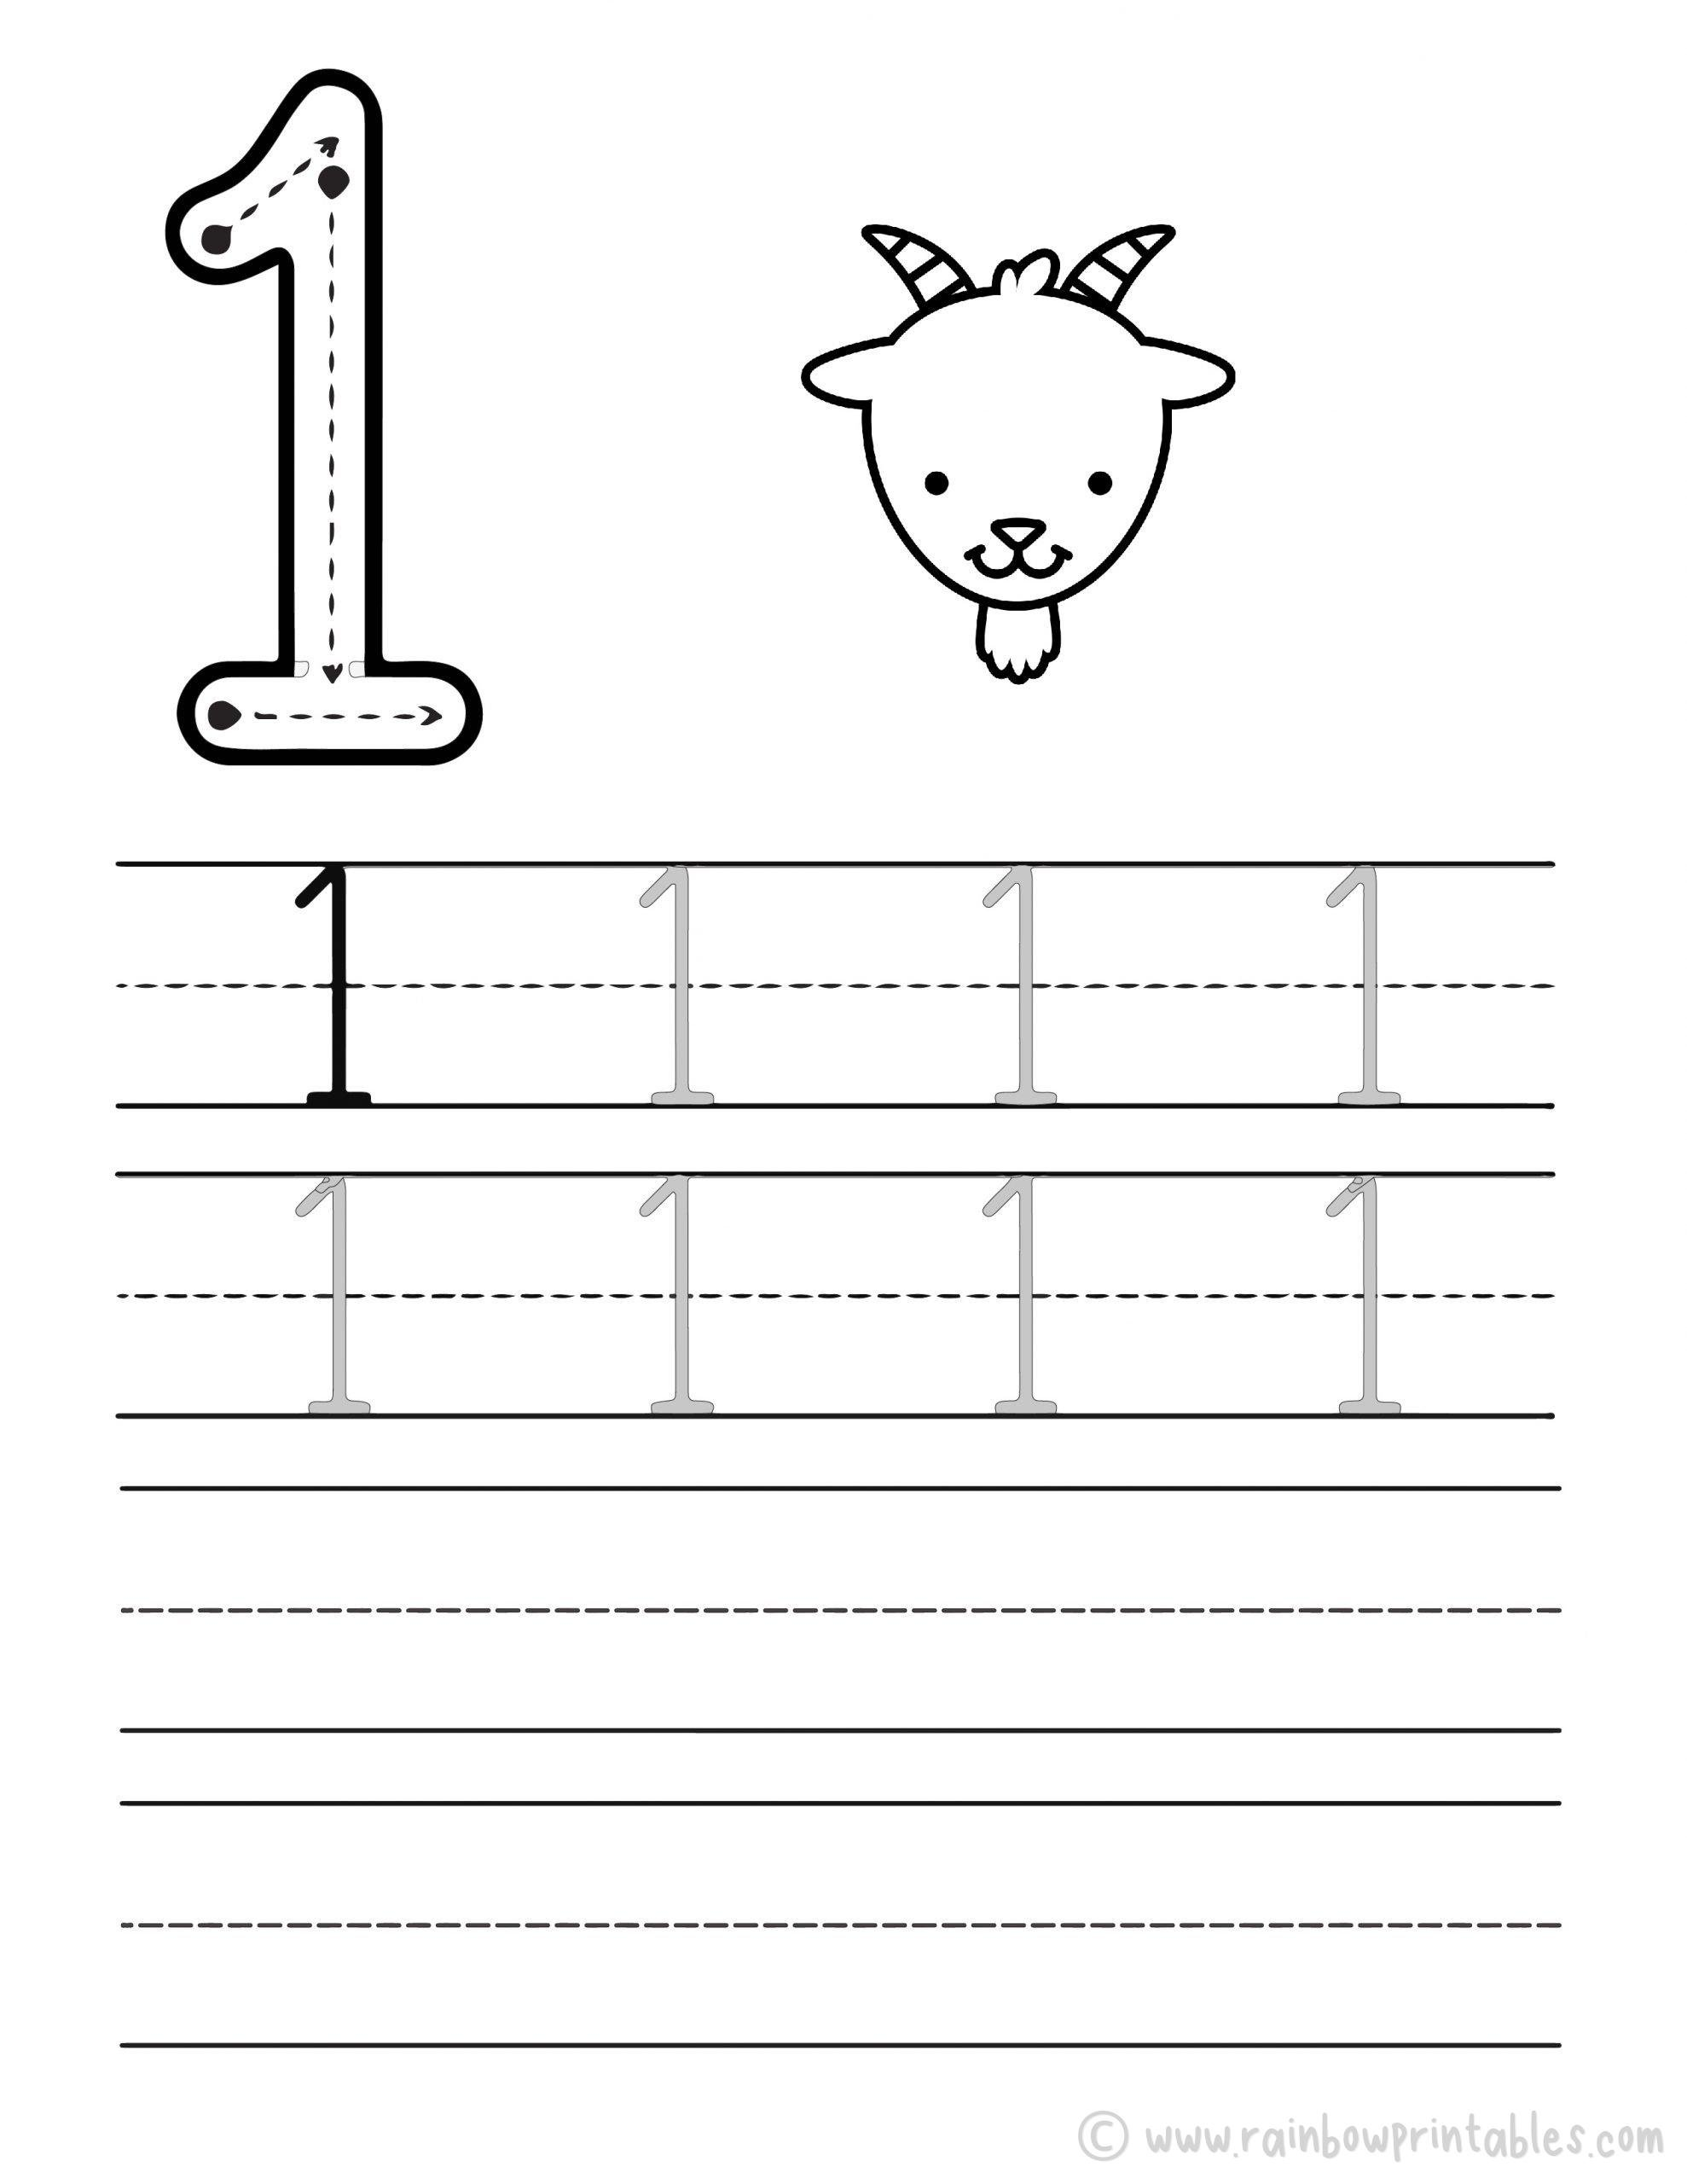 Trace Numbers Worksheet-ONE-1